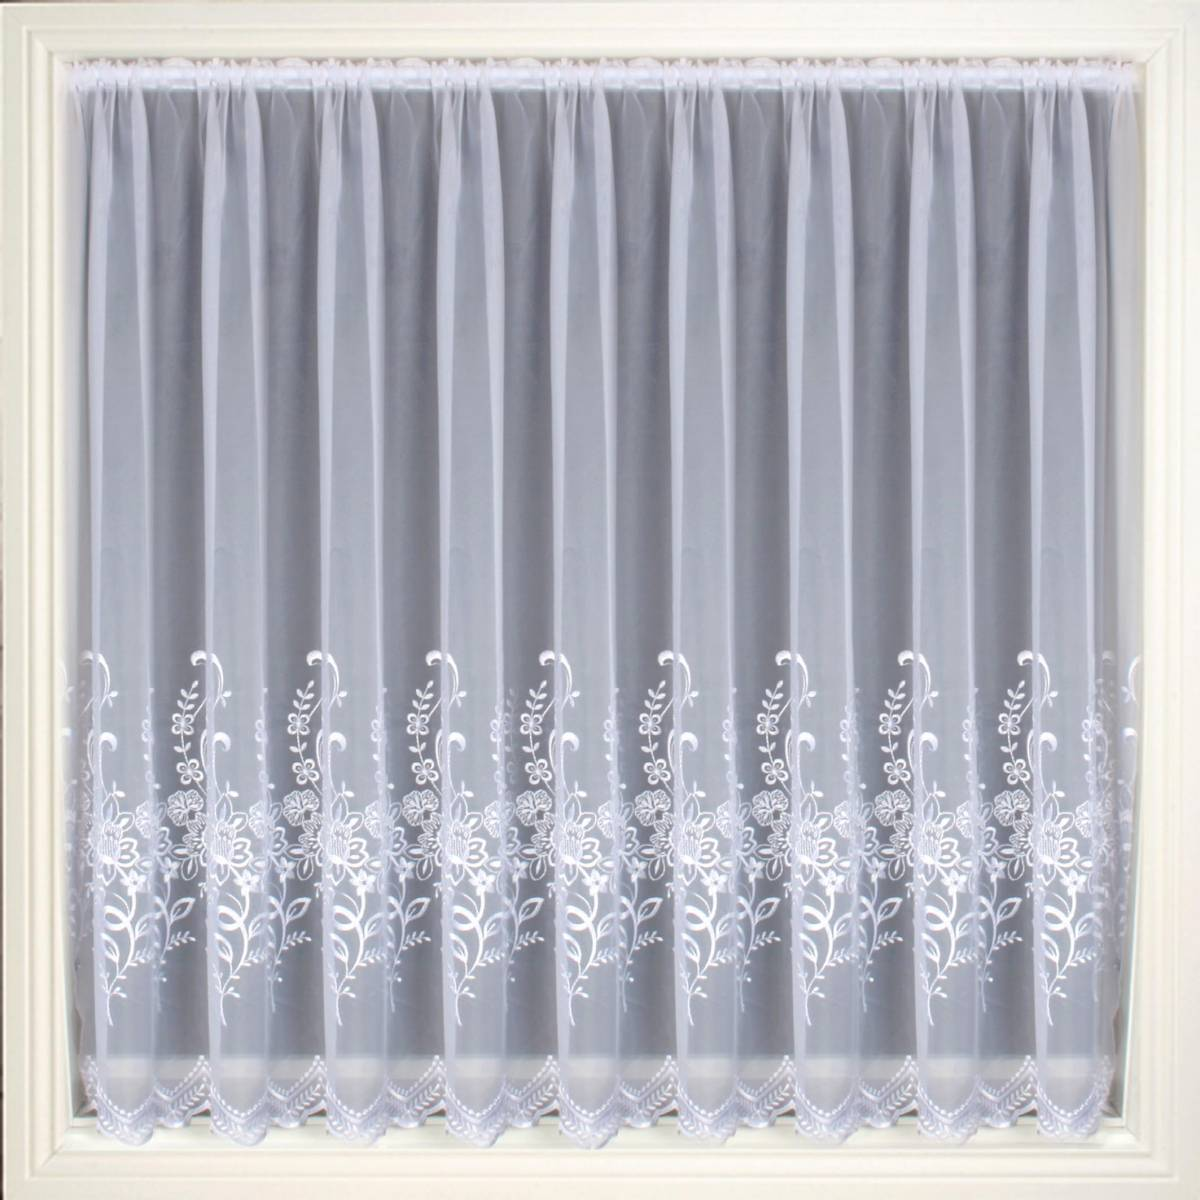 olivia white embroidered voile net curtain 2 curtains. Black Bedroom Furniture Sets. Home Design Ideas